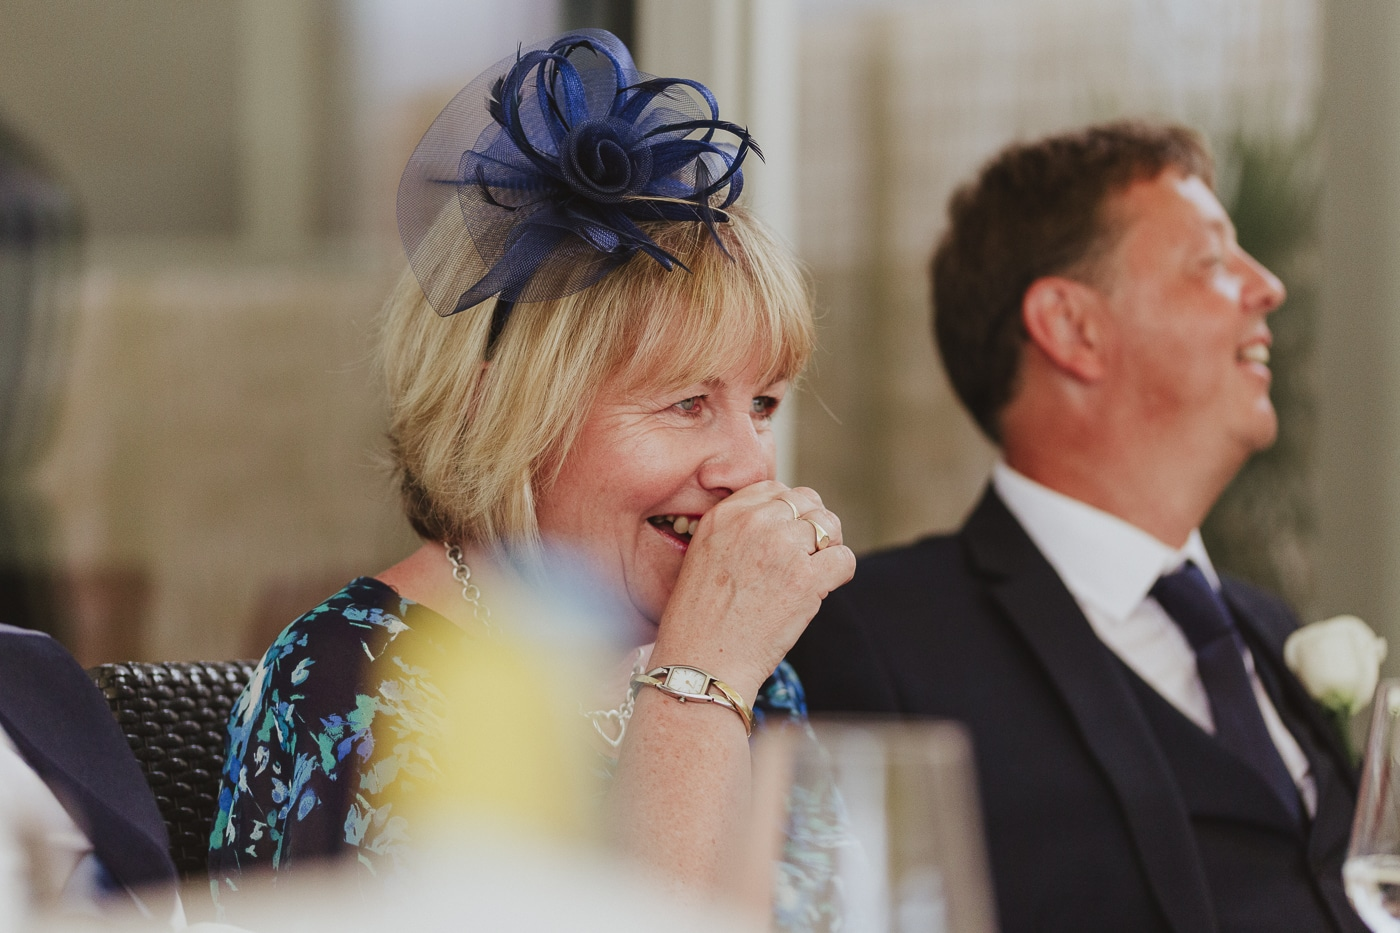 woman in blue fascinator and gold jewellery laughs along with man by Joshua Wyborn